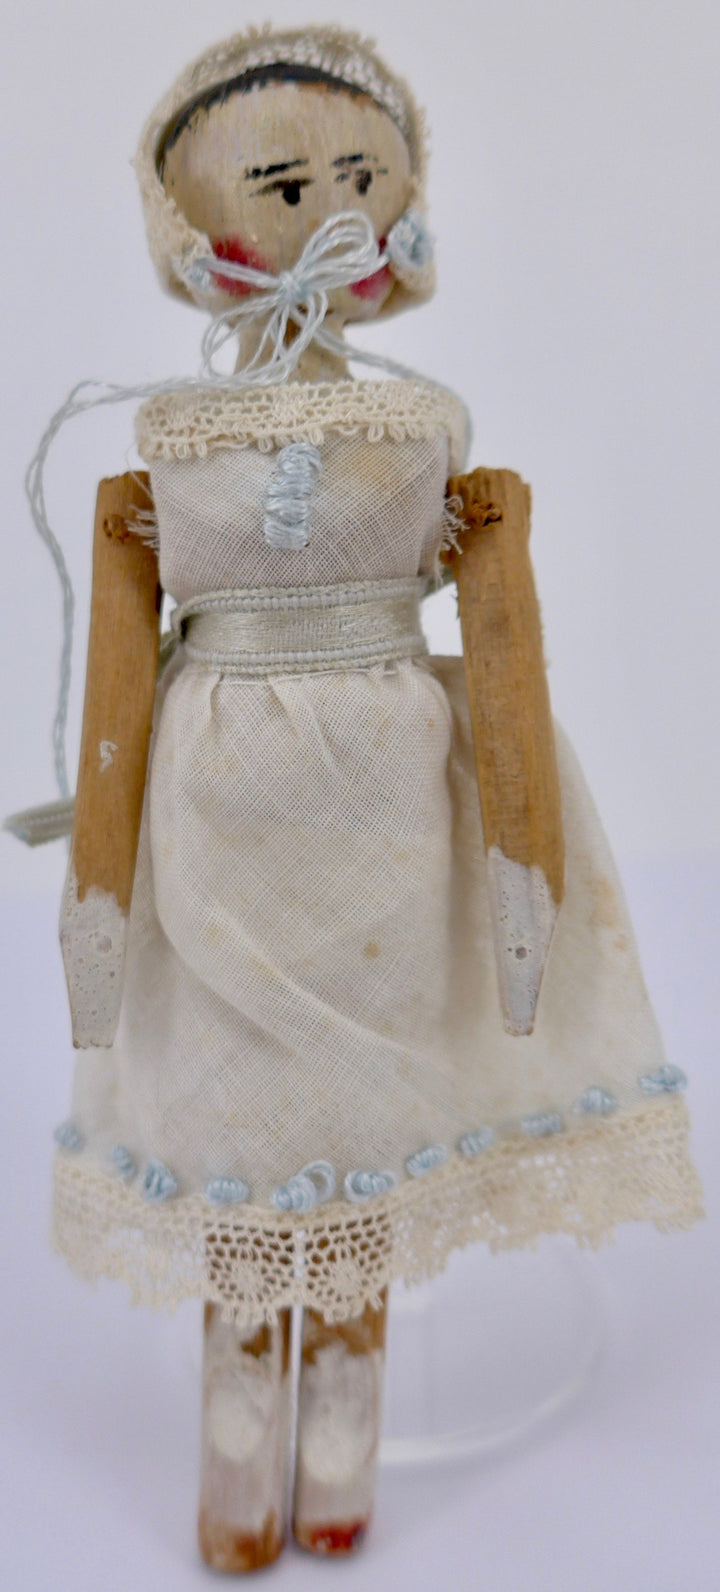 vintage jointed wooden peg doll, white